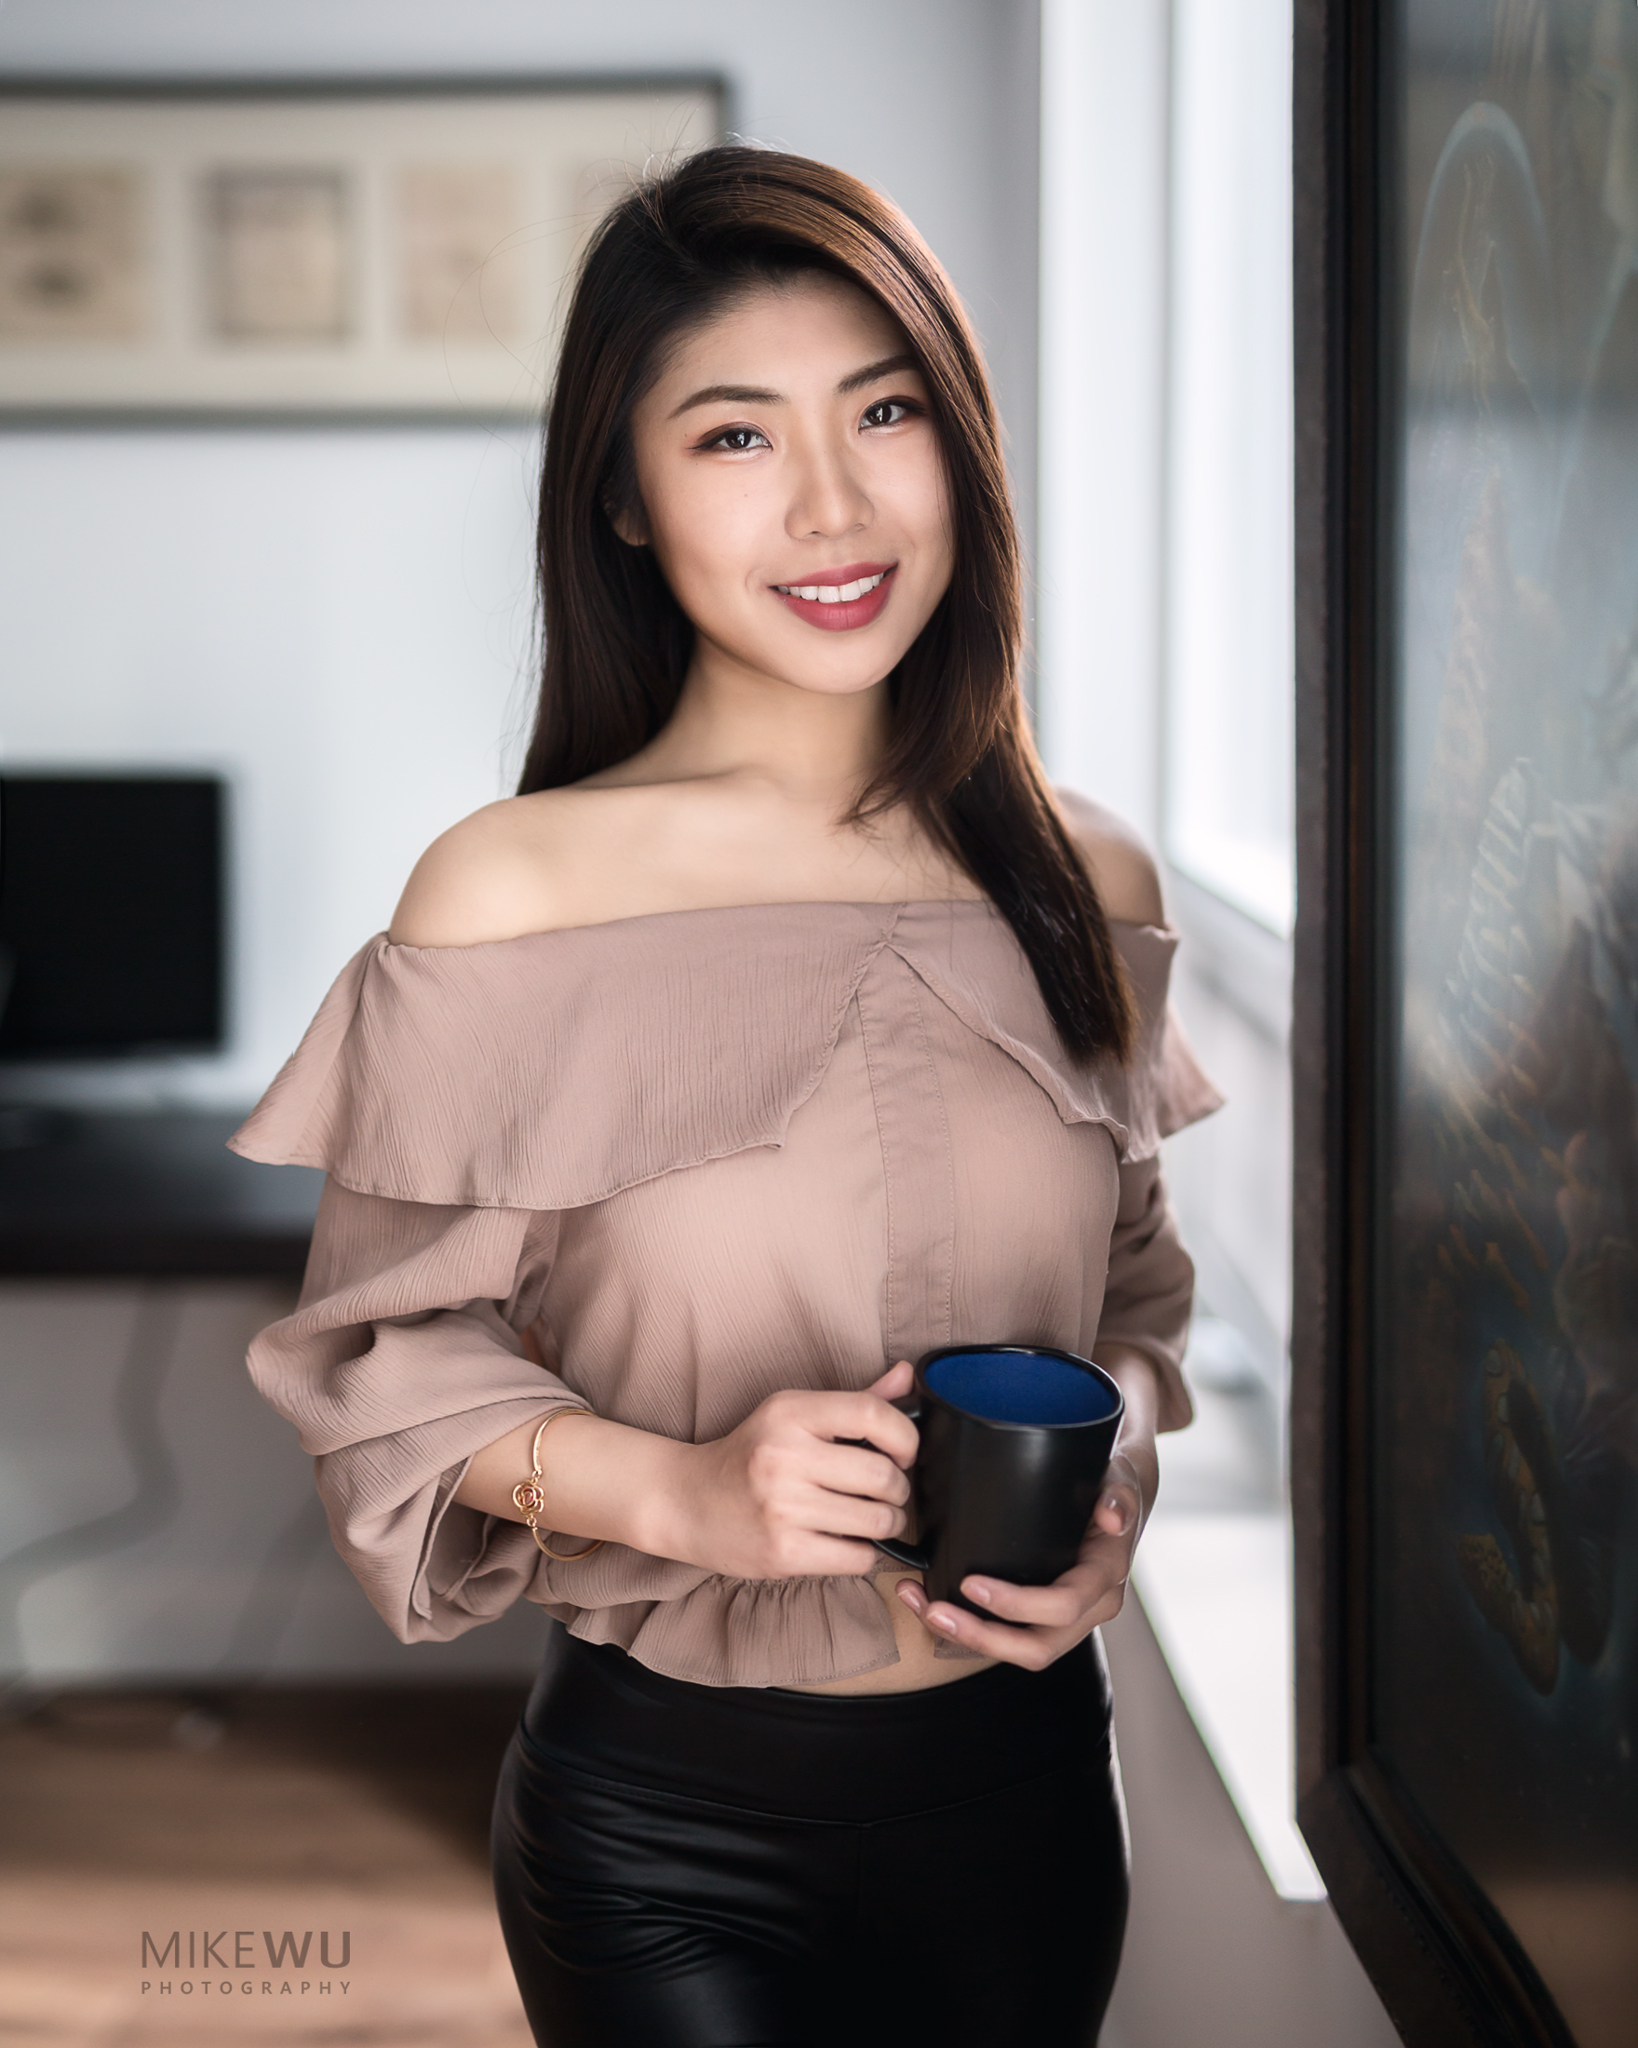 cup, portrait, indoors, window, toronto, photoshoot, portrait, painting, asian, canada, smile, hair, bright, happy